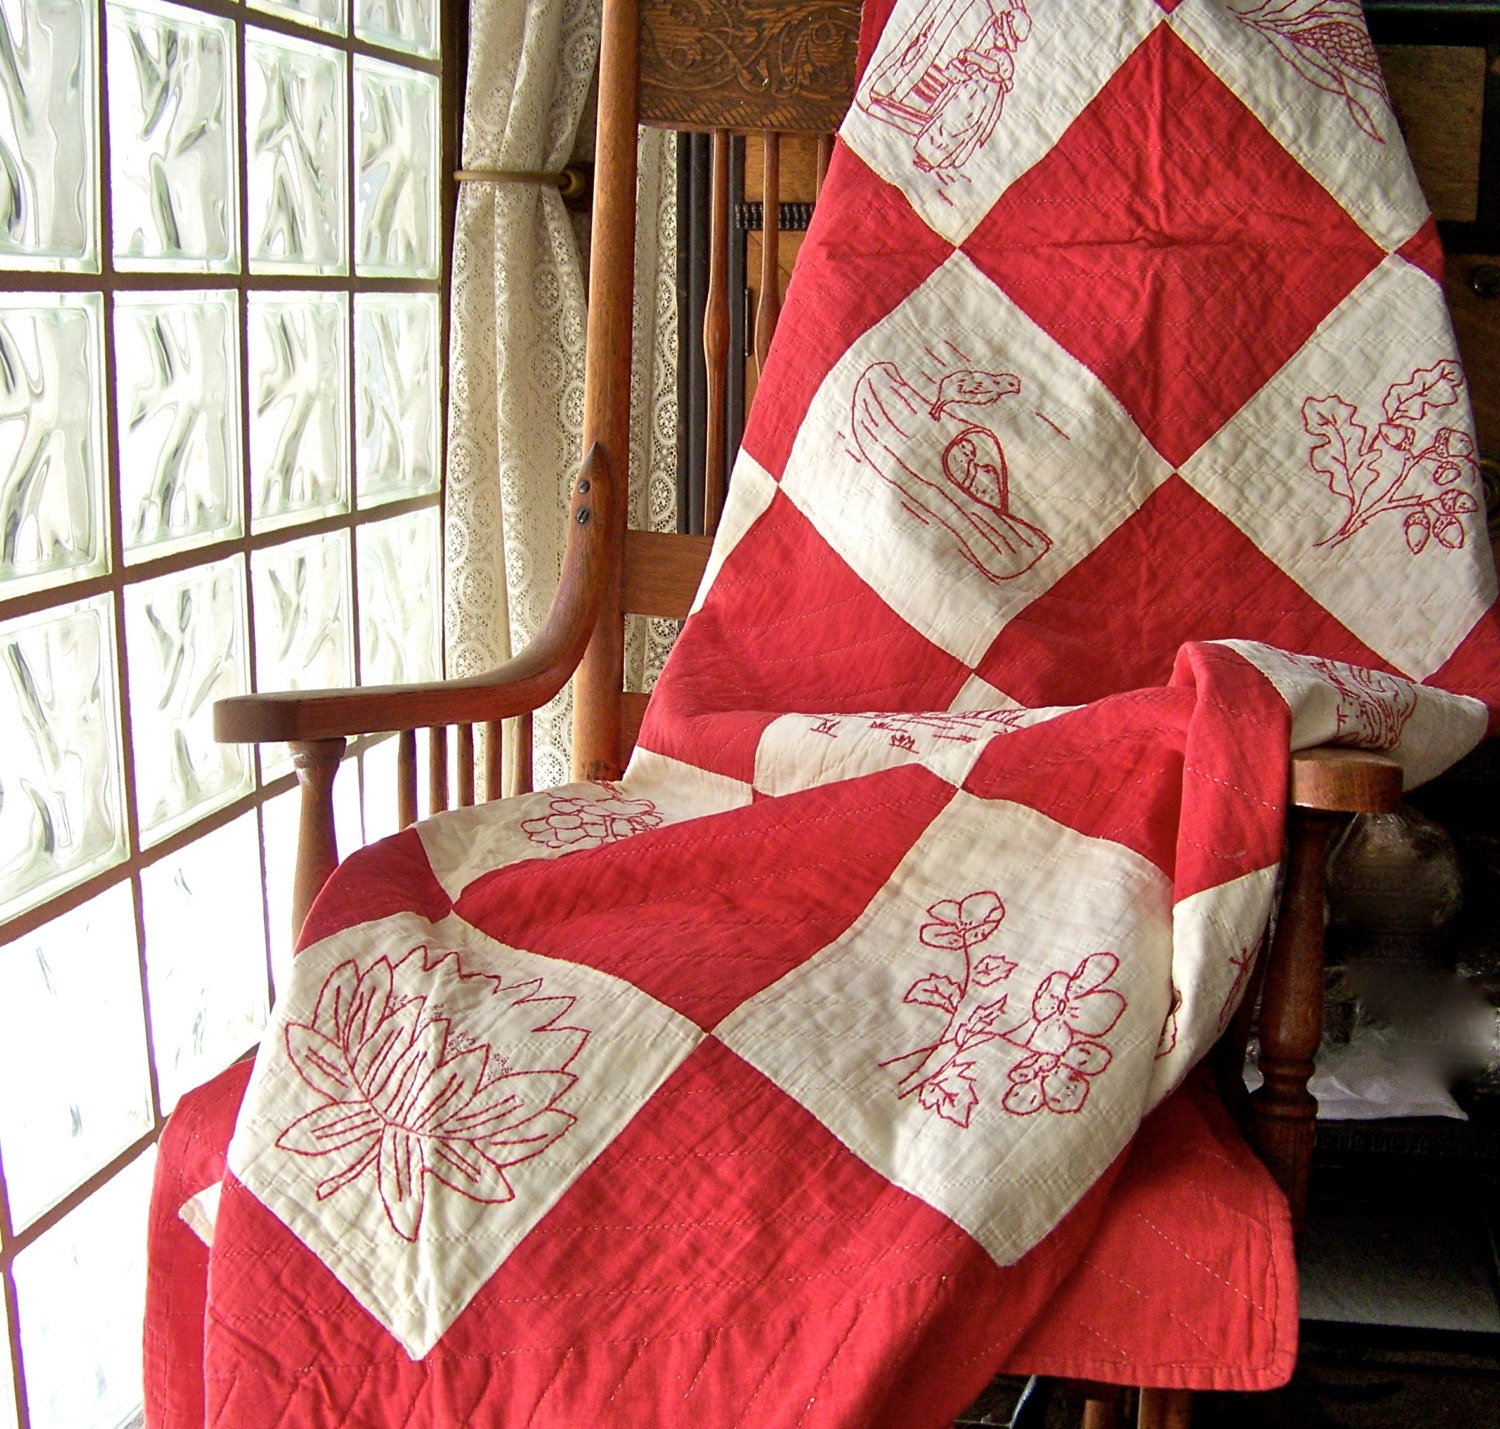 Antique quilt red and white embroidered quilted by